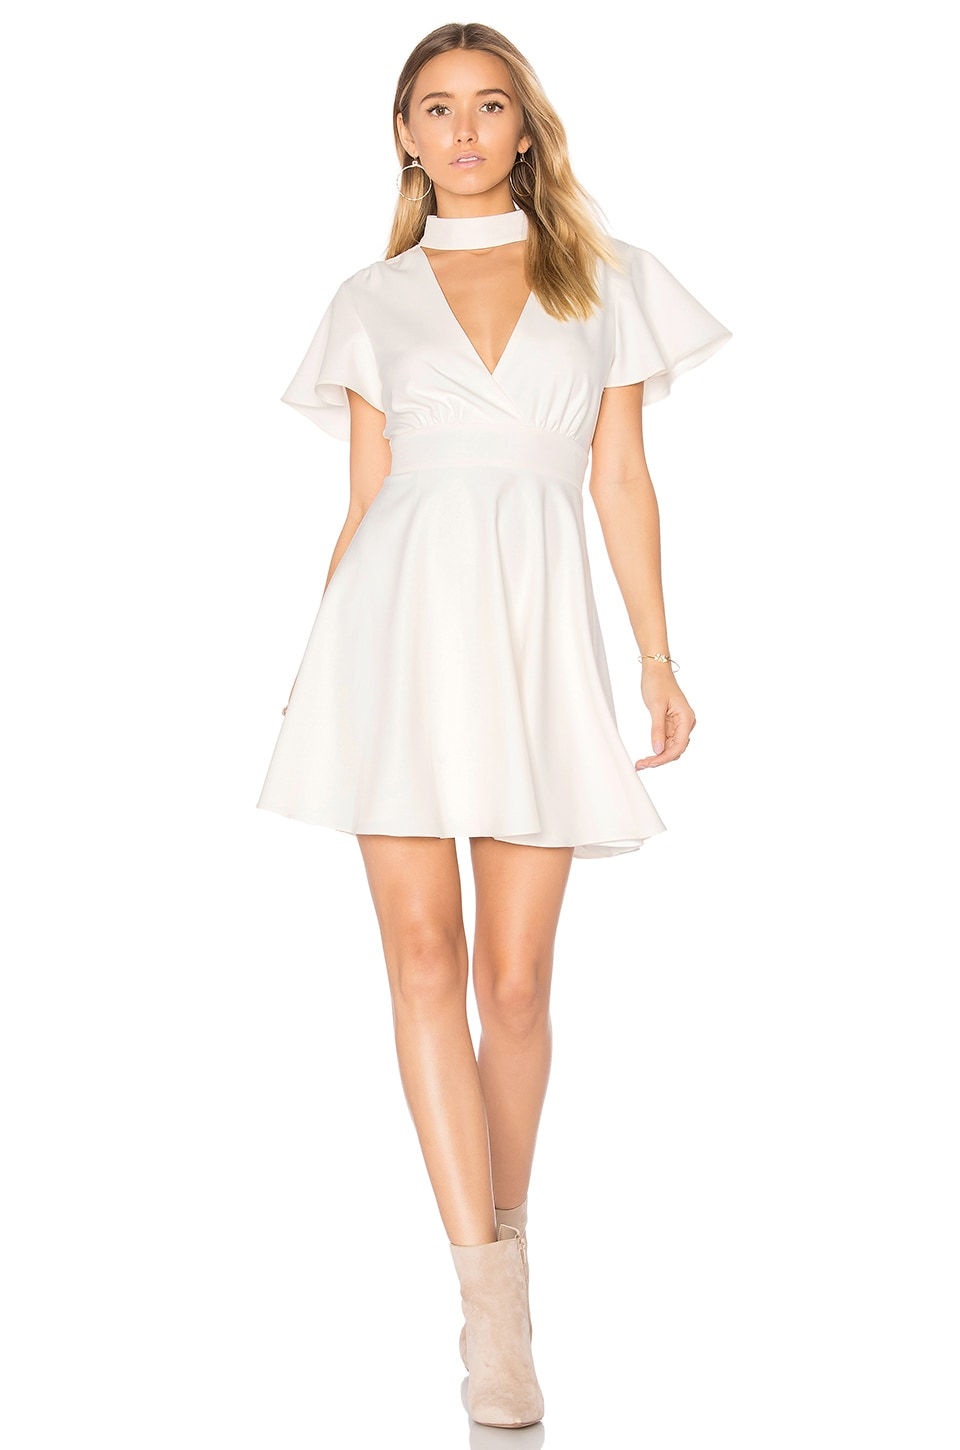 MAJORELLE Sudan Secret Dress in Ivory